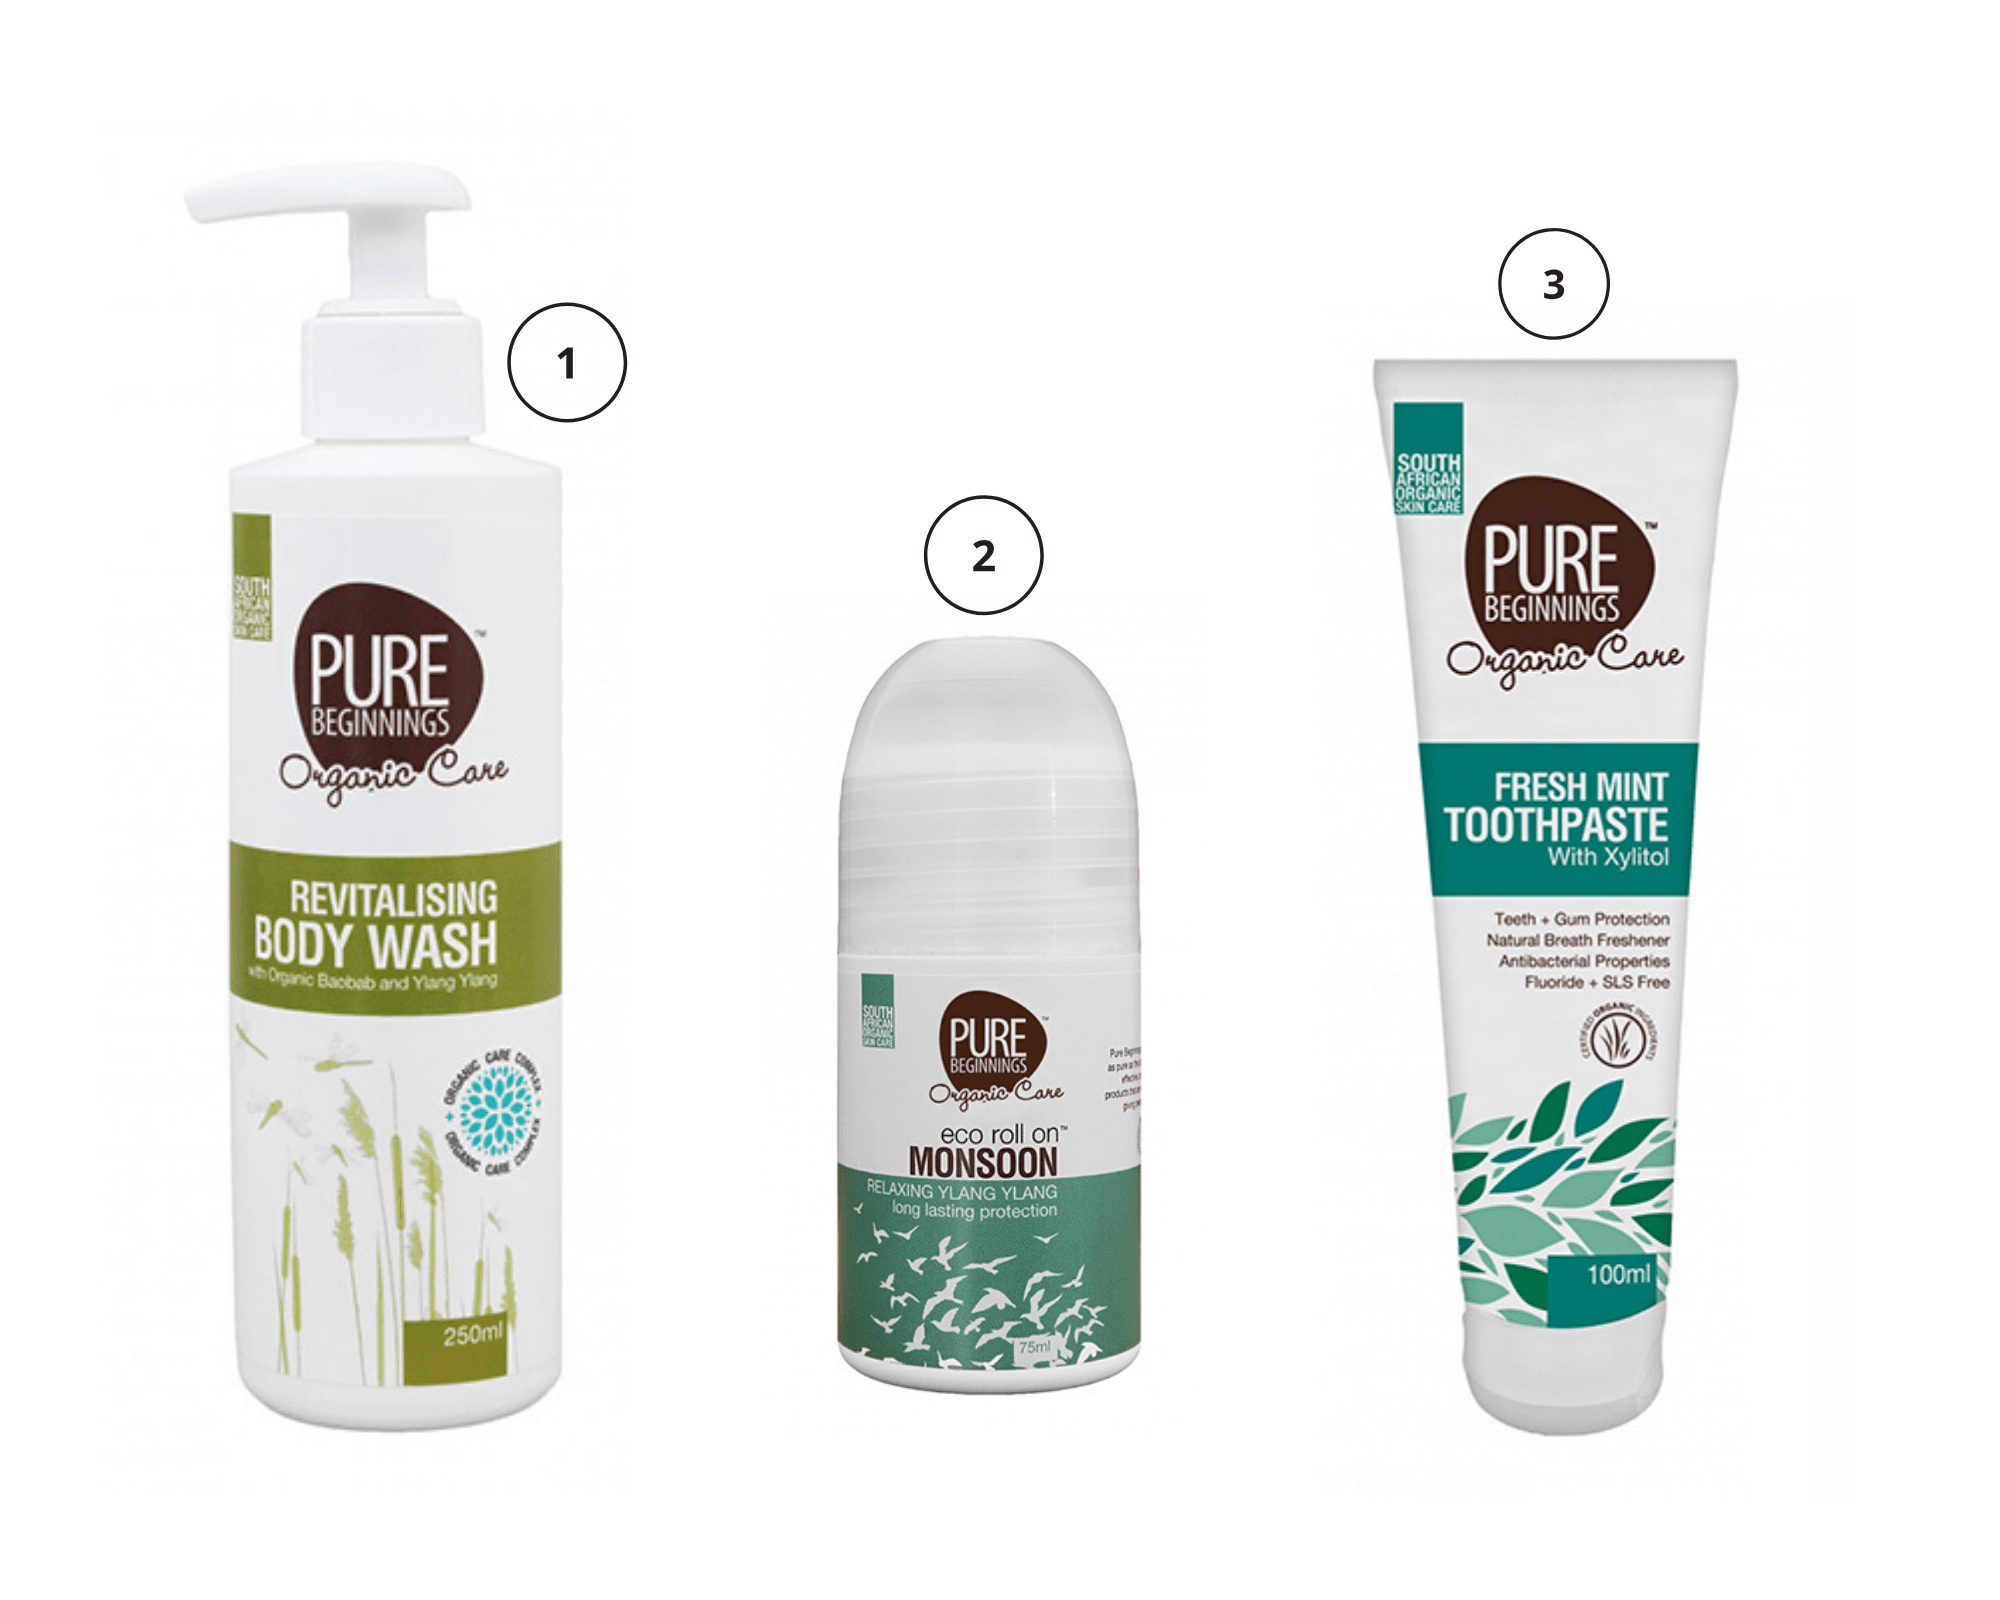 Pure Beginnings Clean Beauty Products South Africa